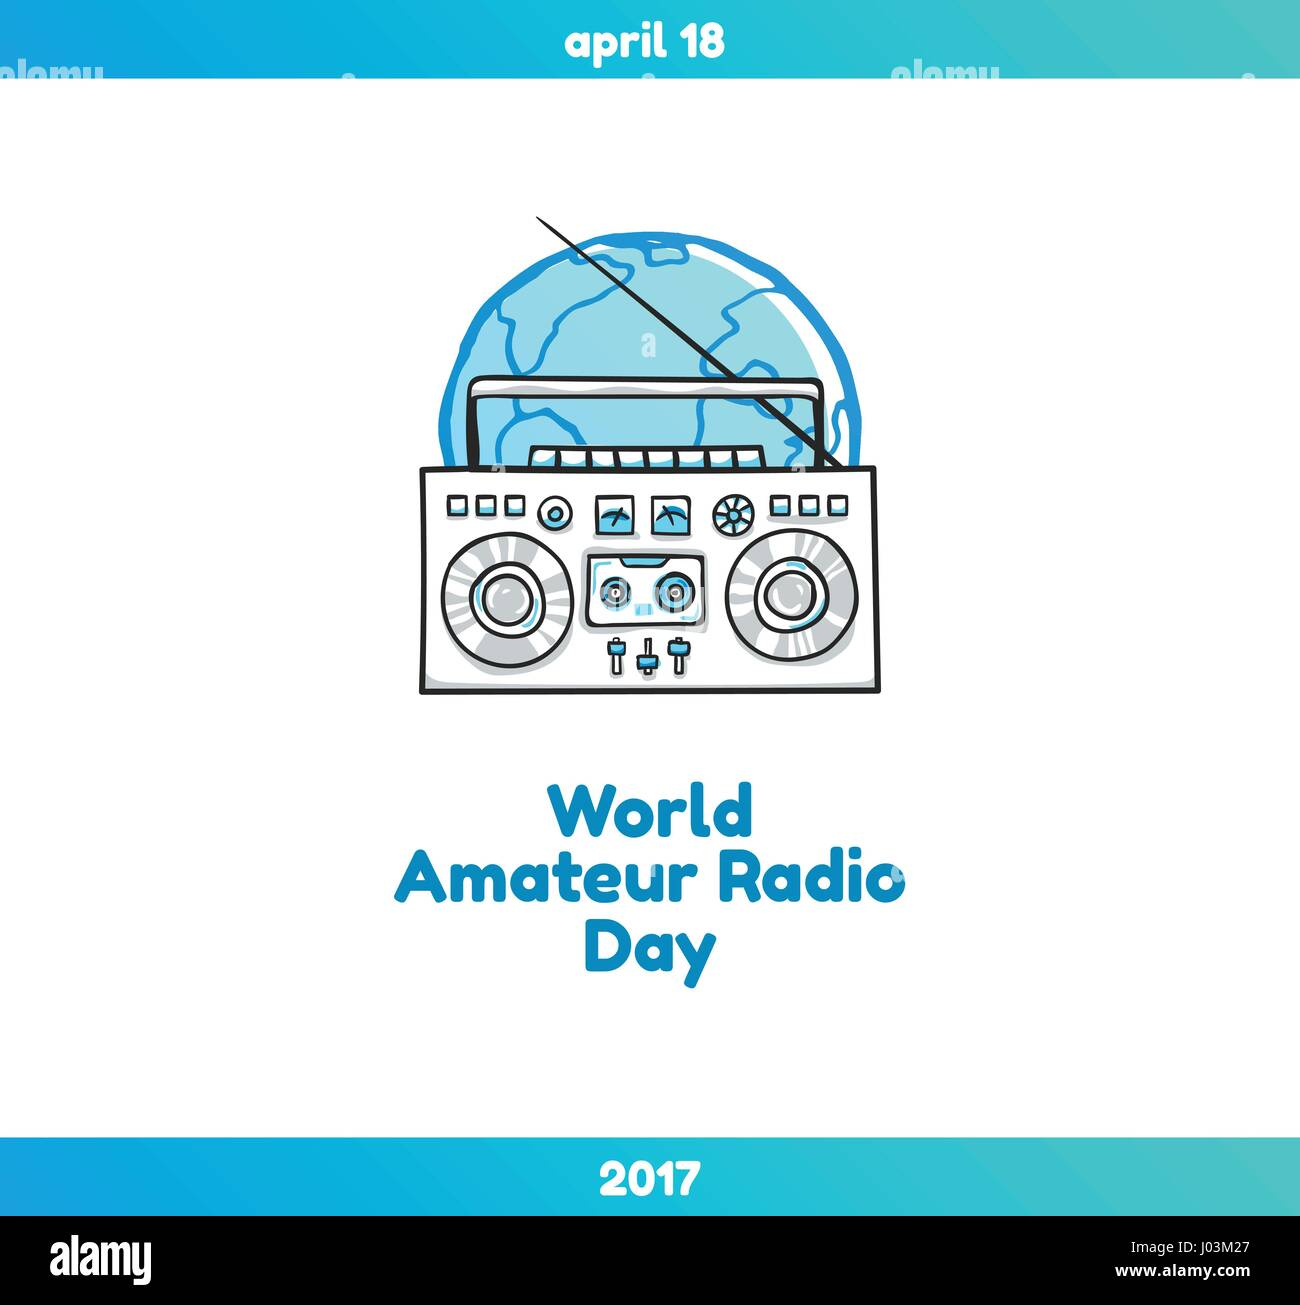 World Amateur Radio Day, April 18. Vector illustration with globe and  radio. Hand drawn sketchy illustration